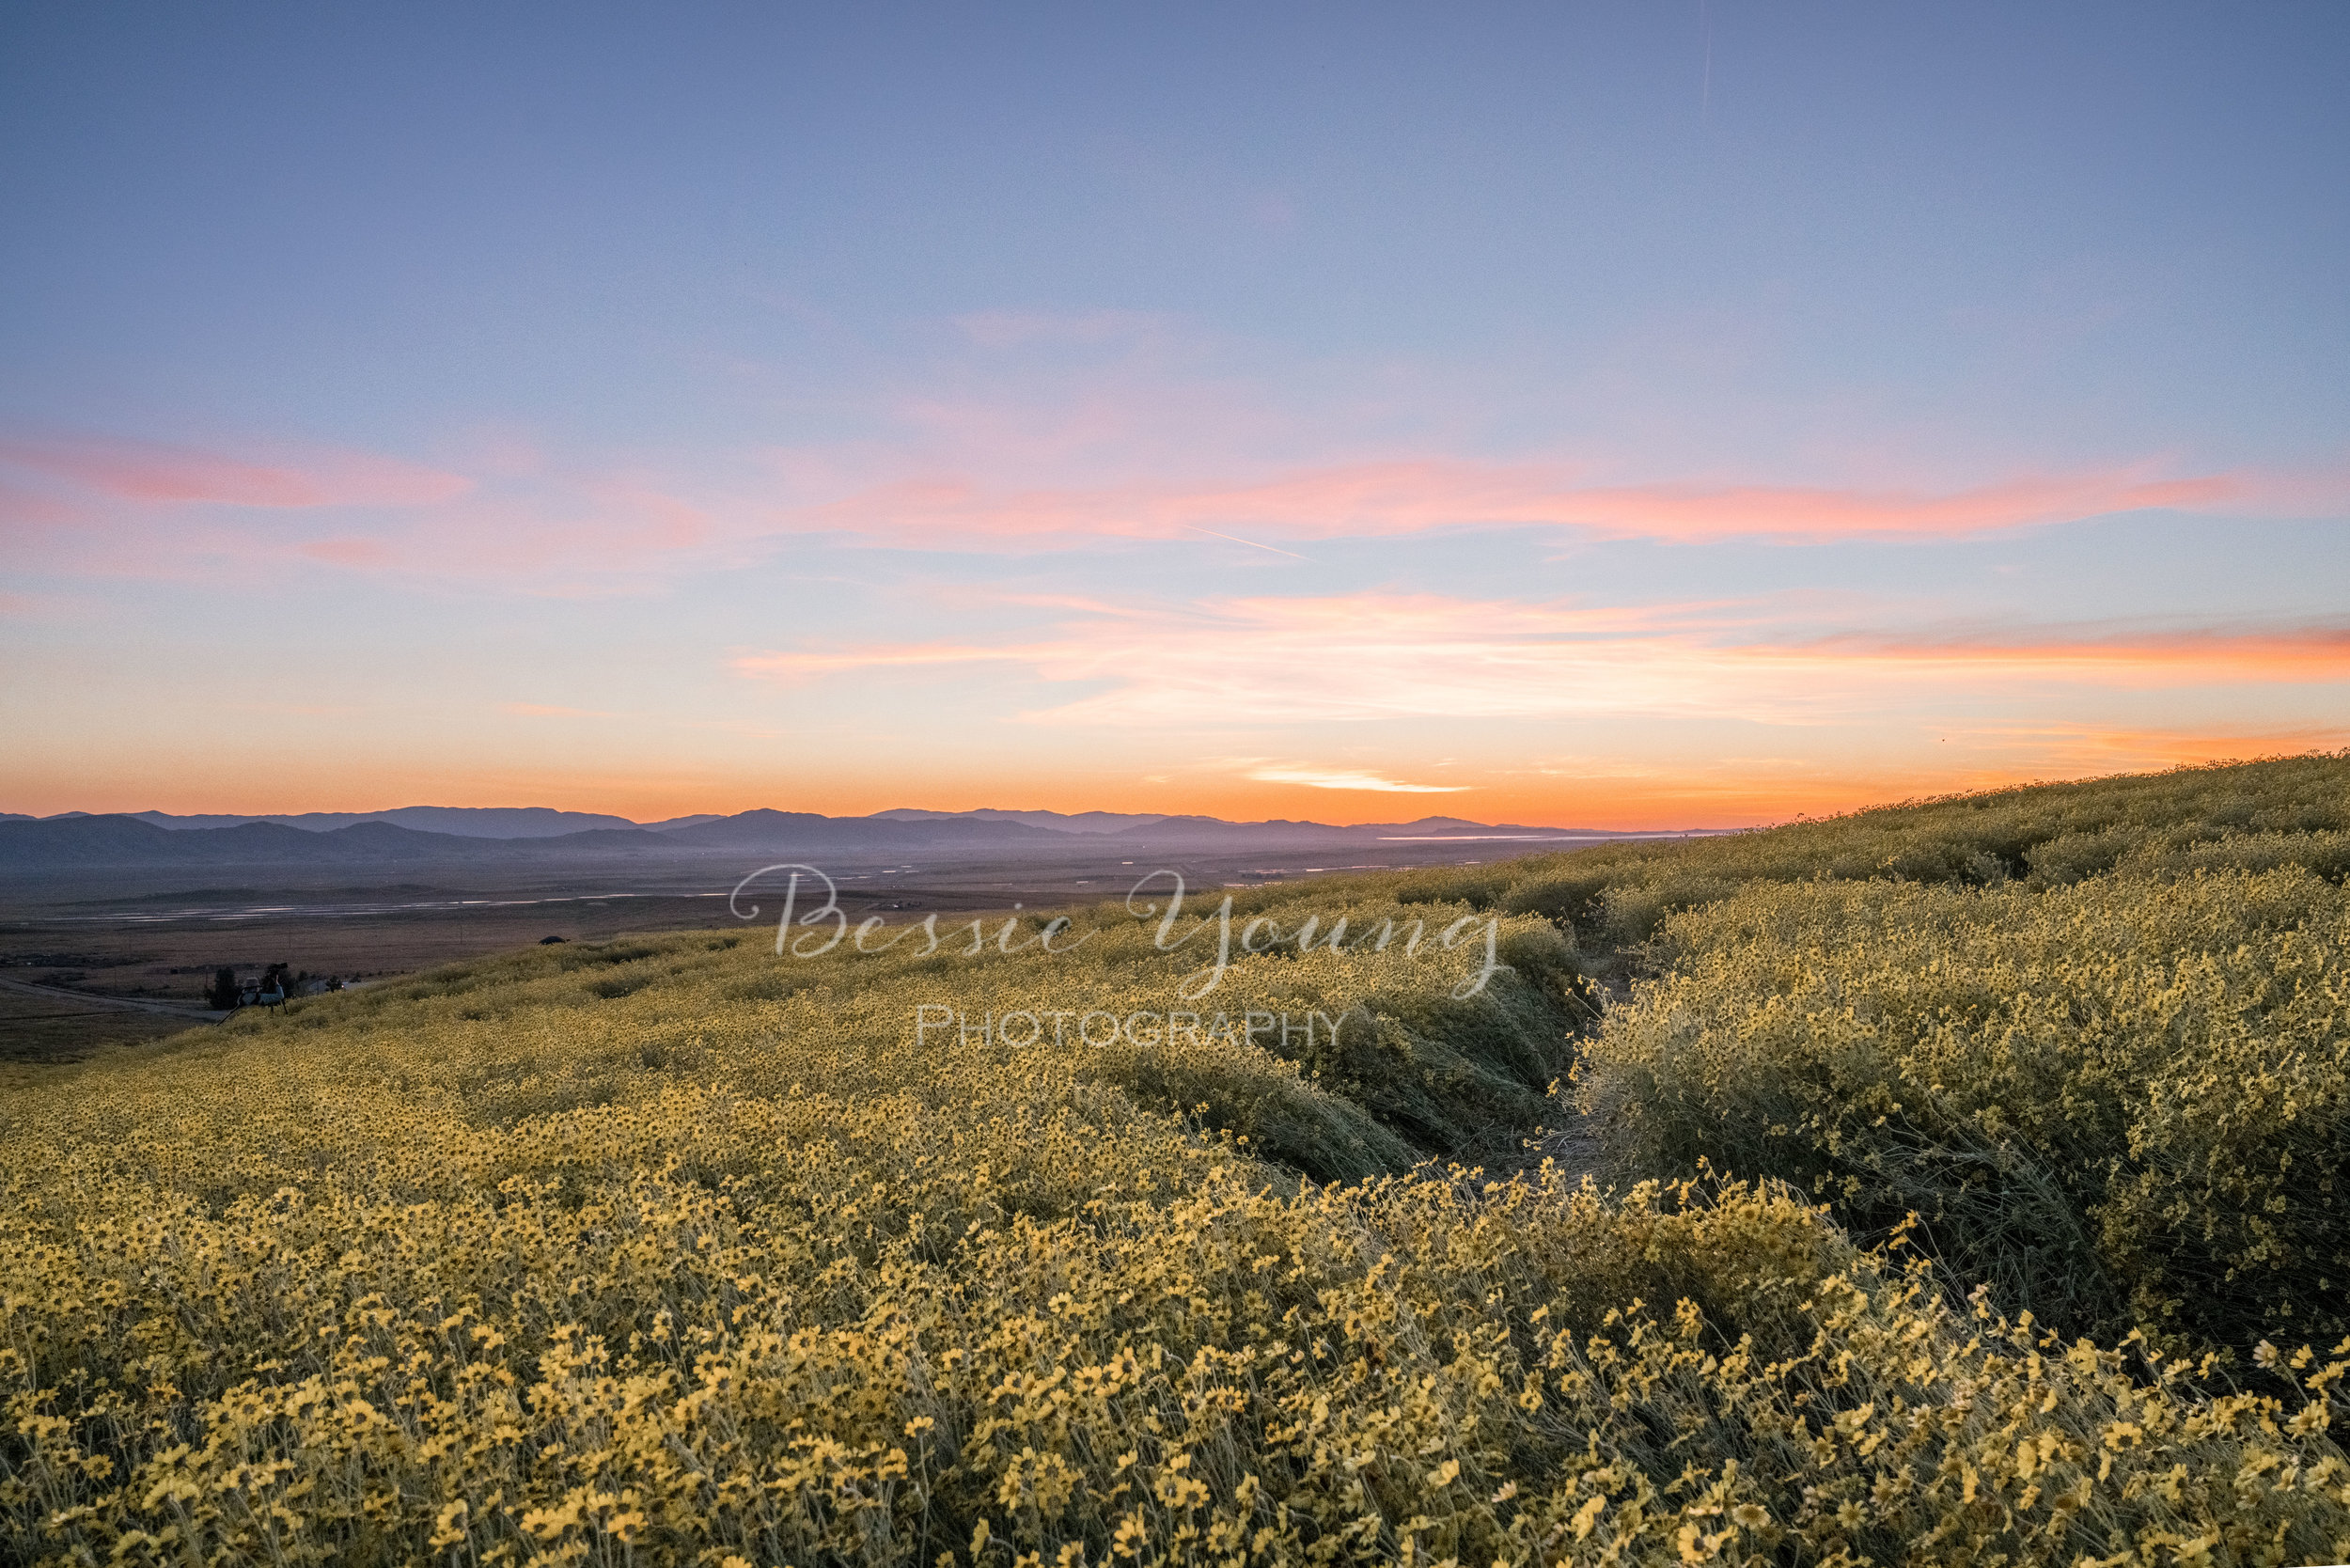 Corrizo Plain Super Bloom by Bessie Young Photography.jpg